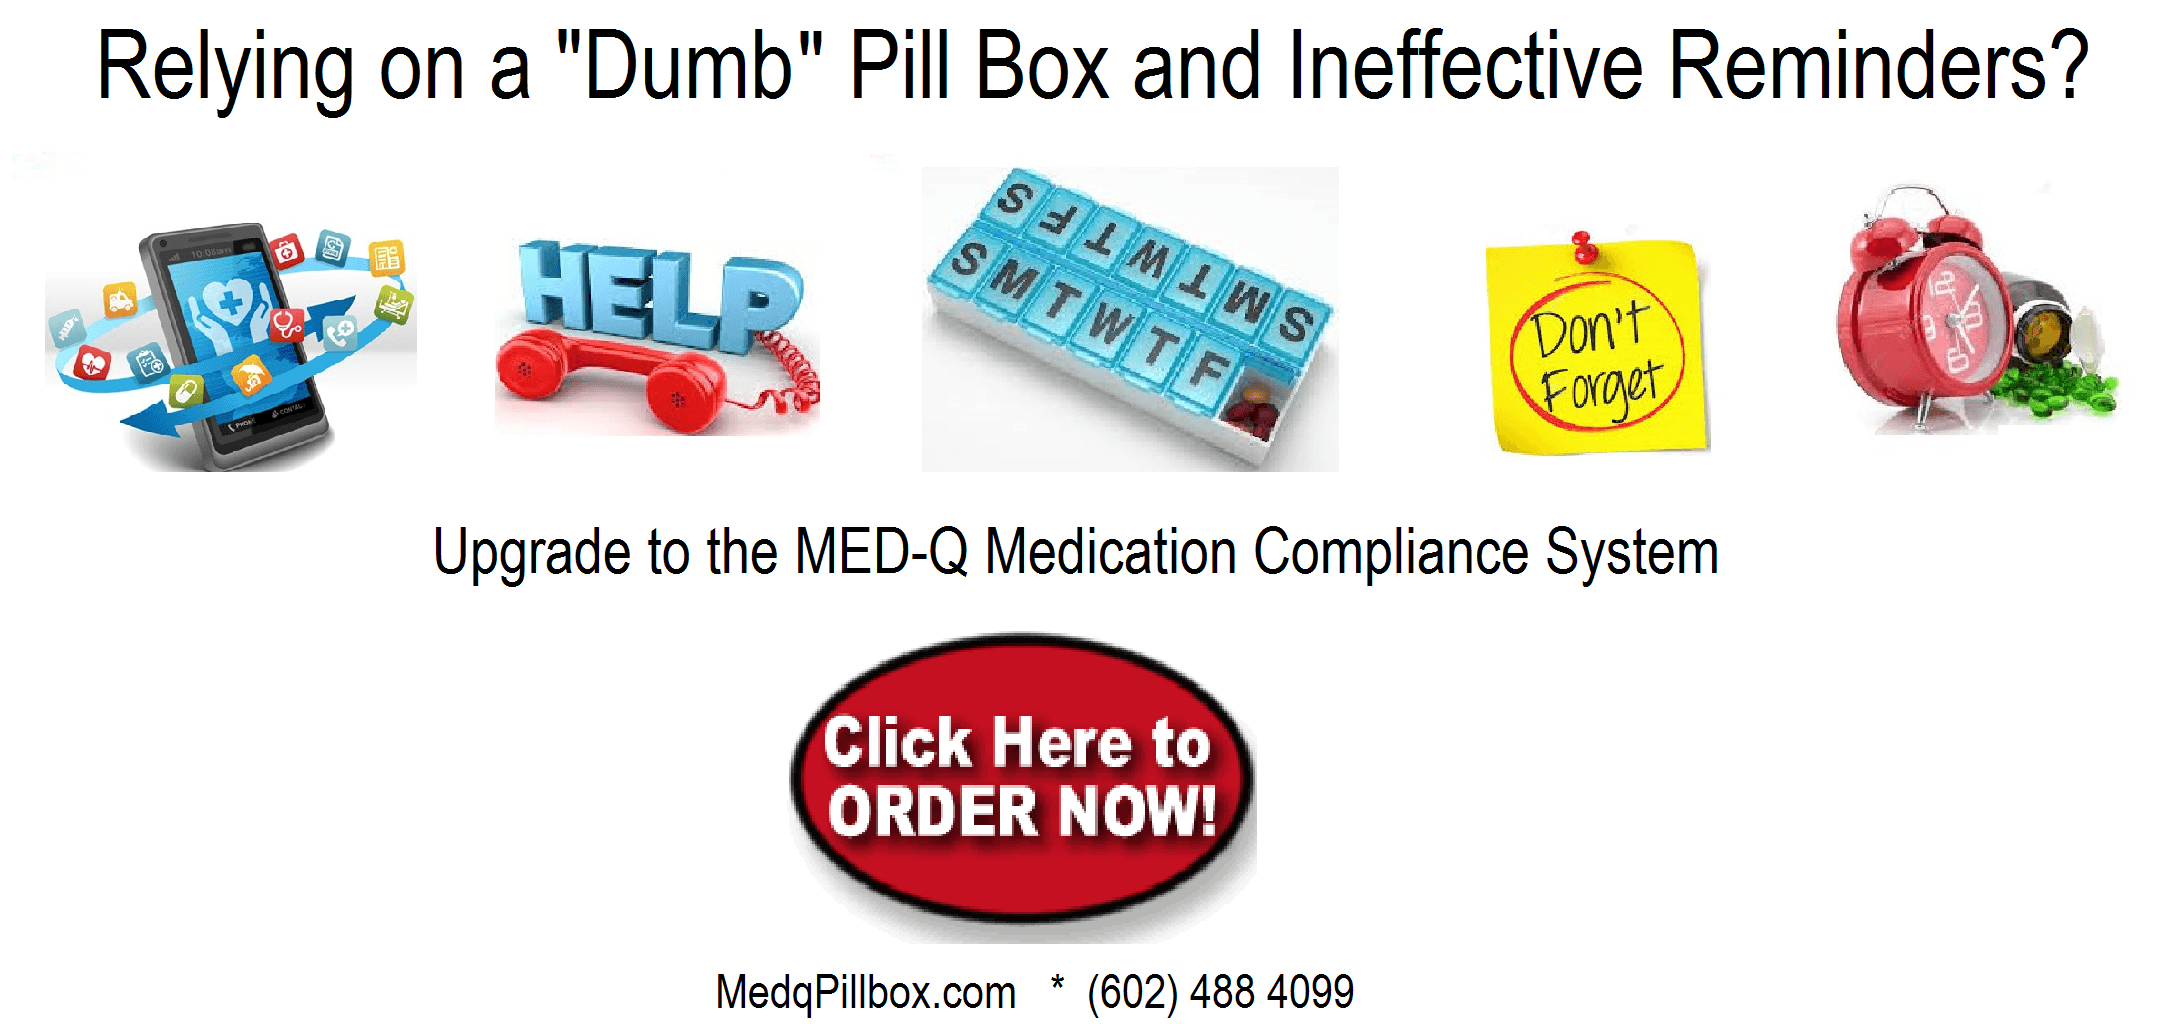 https://medqpillbox.com/risk free trial